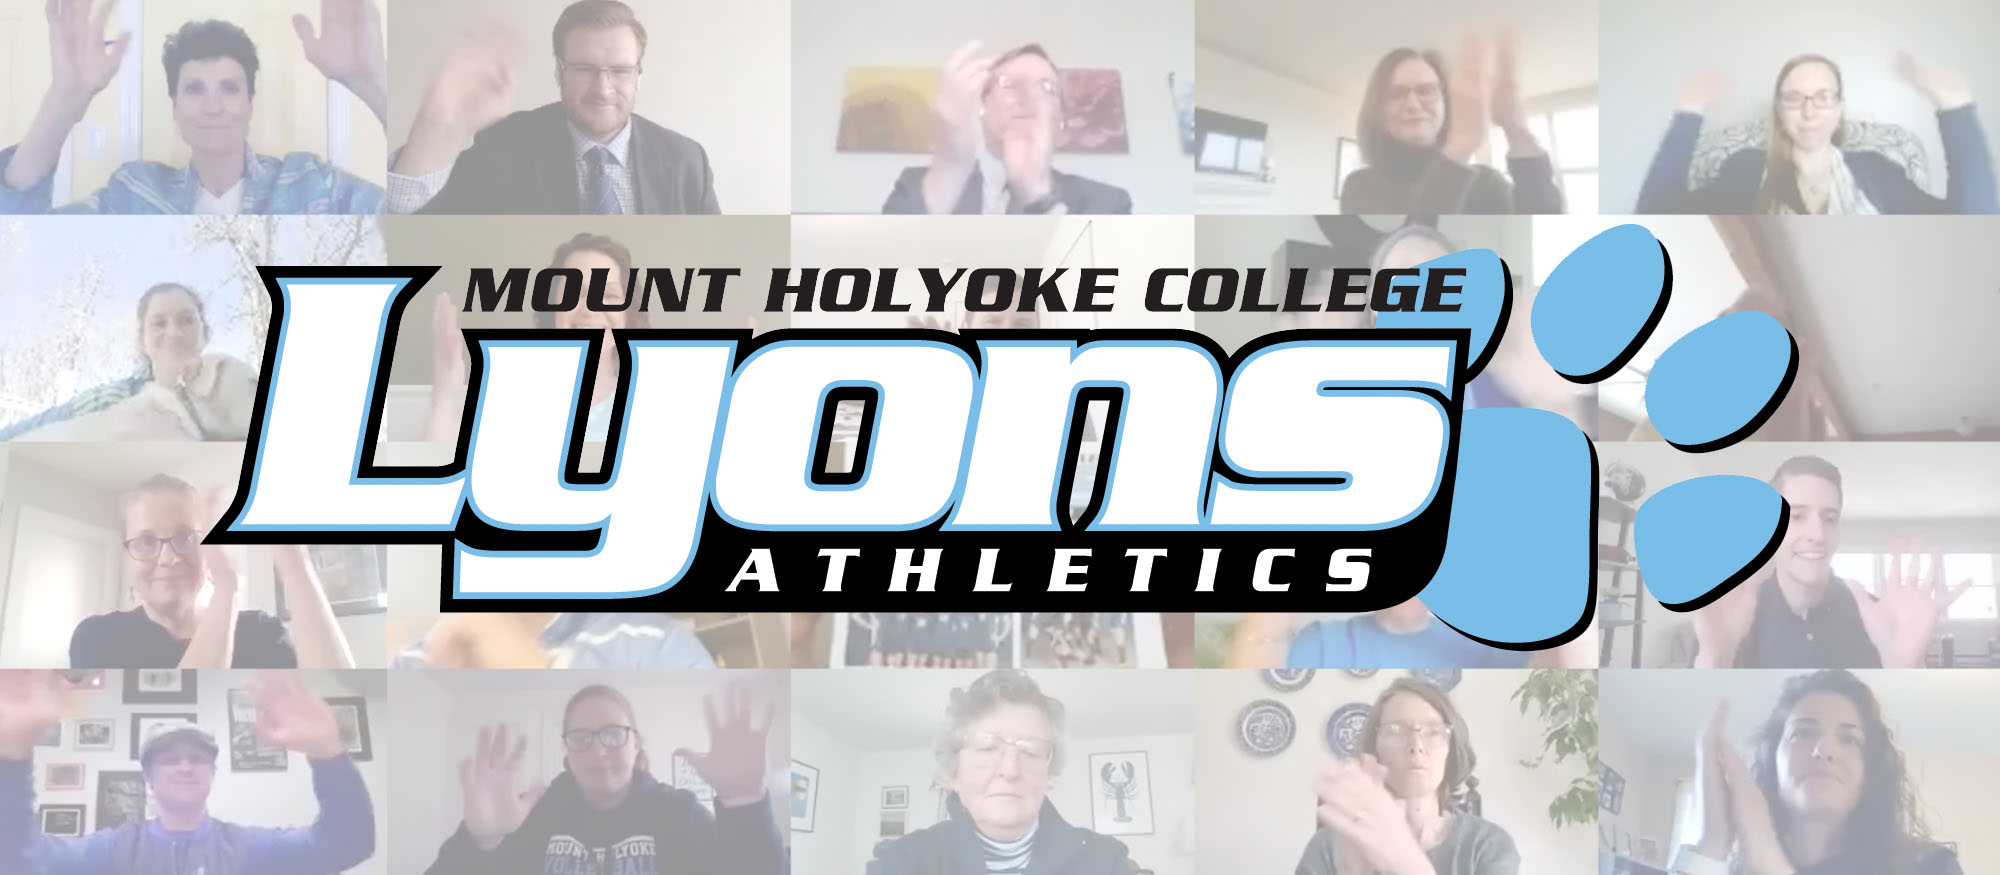 Hendricks '92 Named Department Lyon of the Year; Athletics Hosts Virtual Awards Celebration